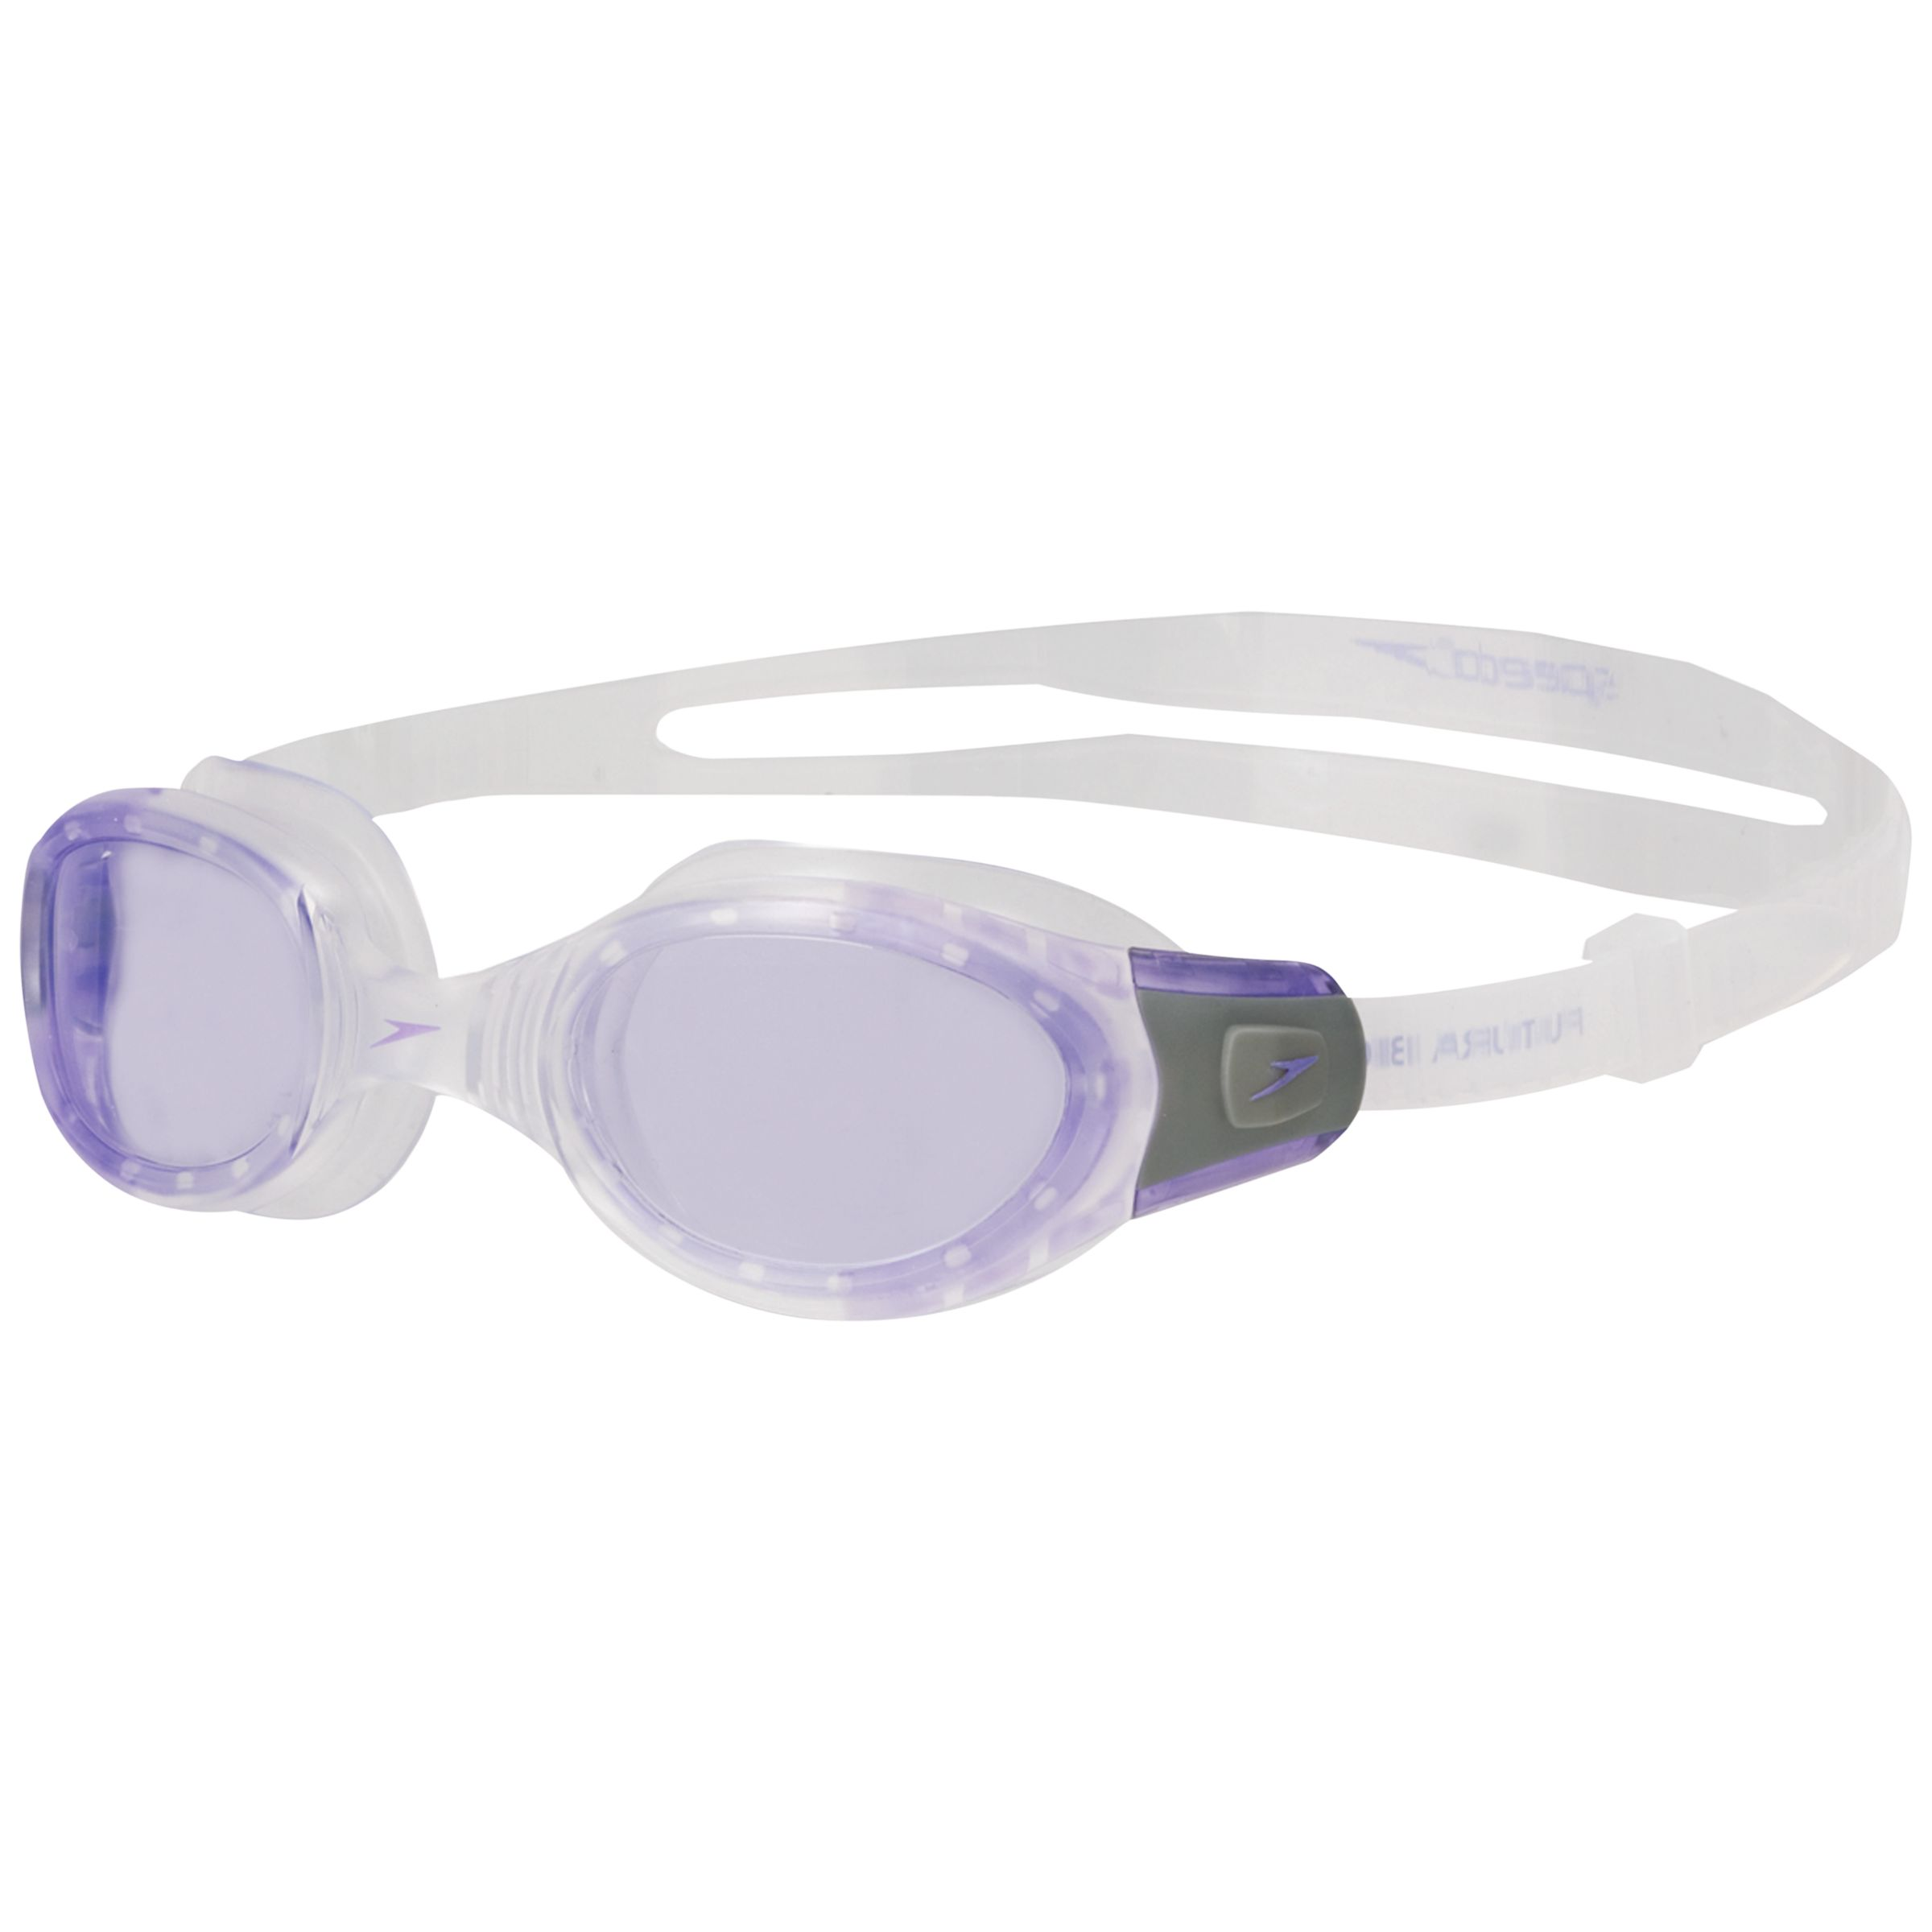 Speedo Futura Biofuse Goggles, Clear/Purple